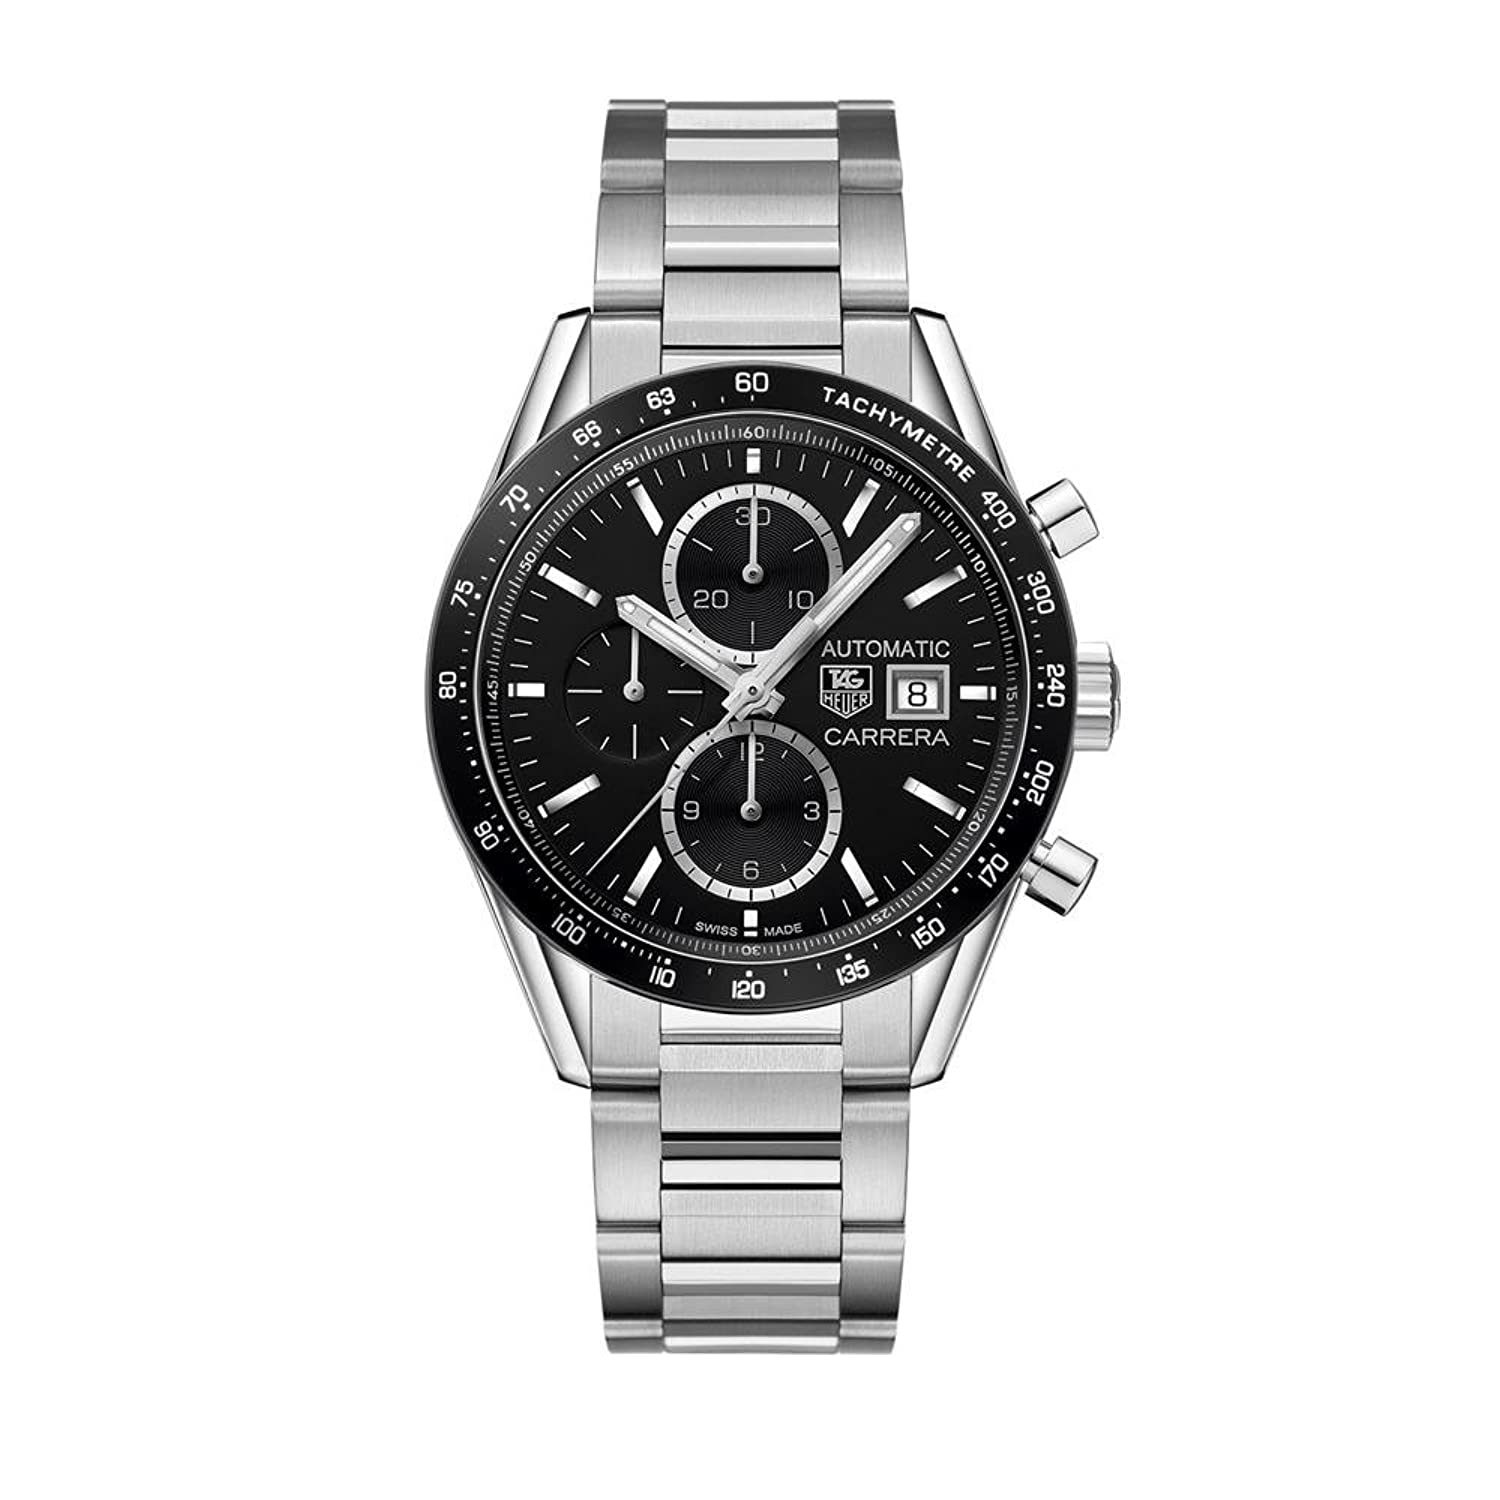 TAG HEUER MEN'S CARRERA 41MM STEEL BRACELET AUTOMATIC WATCH CV201AL.BA0723 B019RCQXLQ